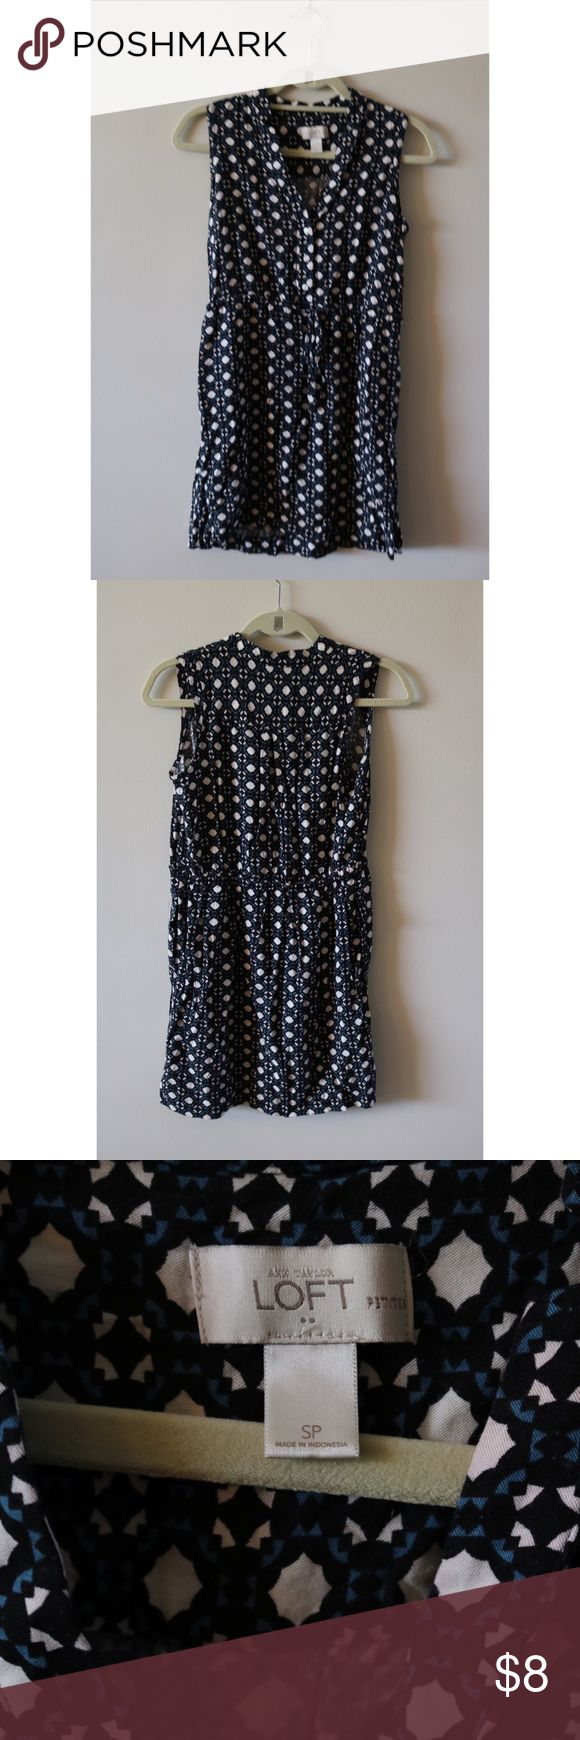 Ann Taylor LOFT Outlet SP Geometric  shirtdress Very good condition--no flaws just normal wash and wear.  Small Petite ANN TAYLOR LOFT OUTLET sleeveless shirt dress with a white, black, and blue geometric pattern.  Perfect for casual or with a cardigan for work.  100% RAYON LOFT outlet Dresses